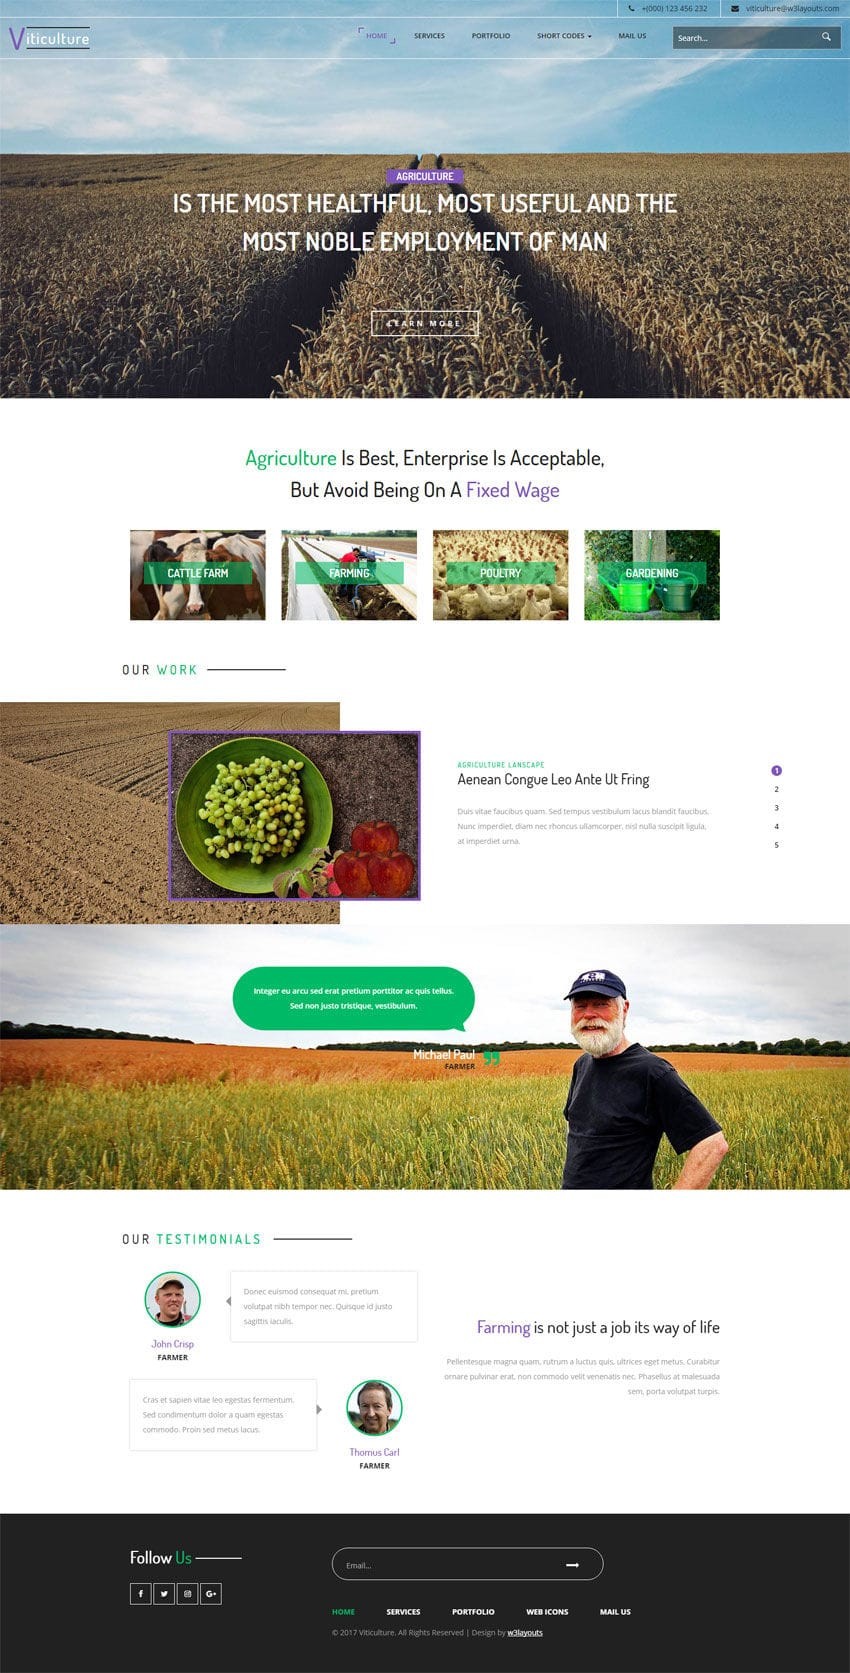 Viticulture an Agriculture Category Flat Bootstrap Responsive Web ...